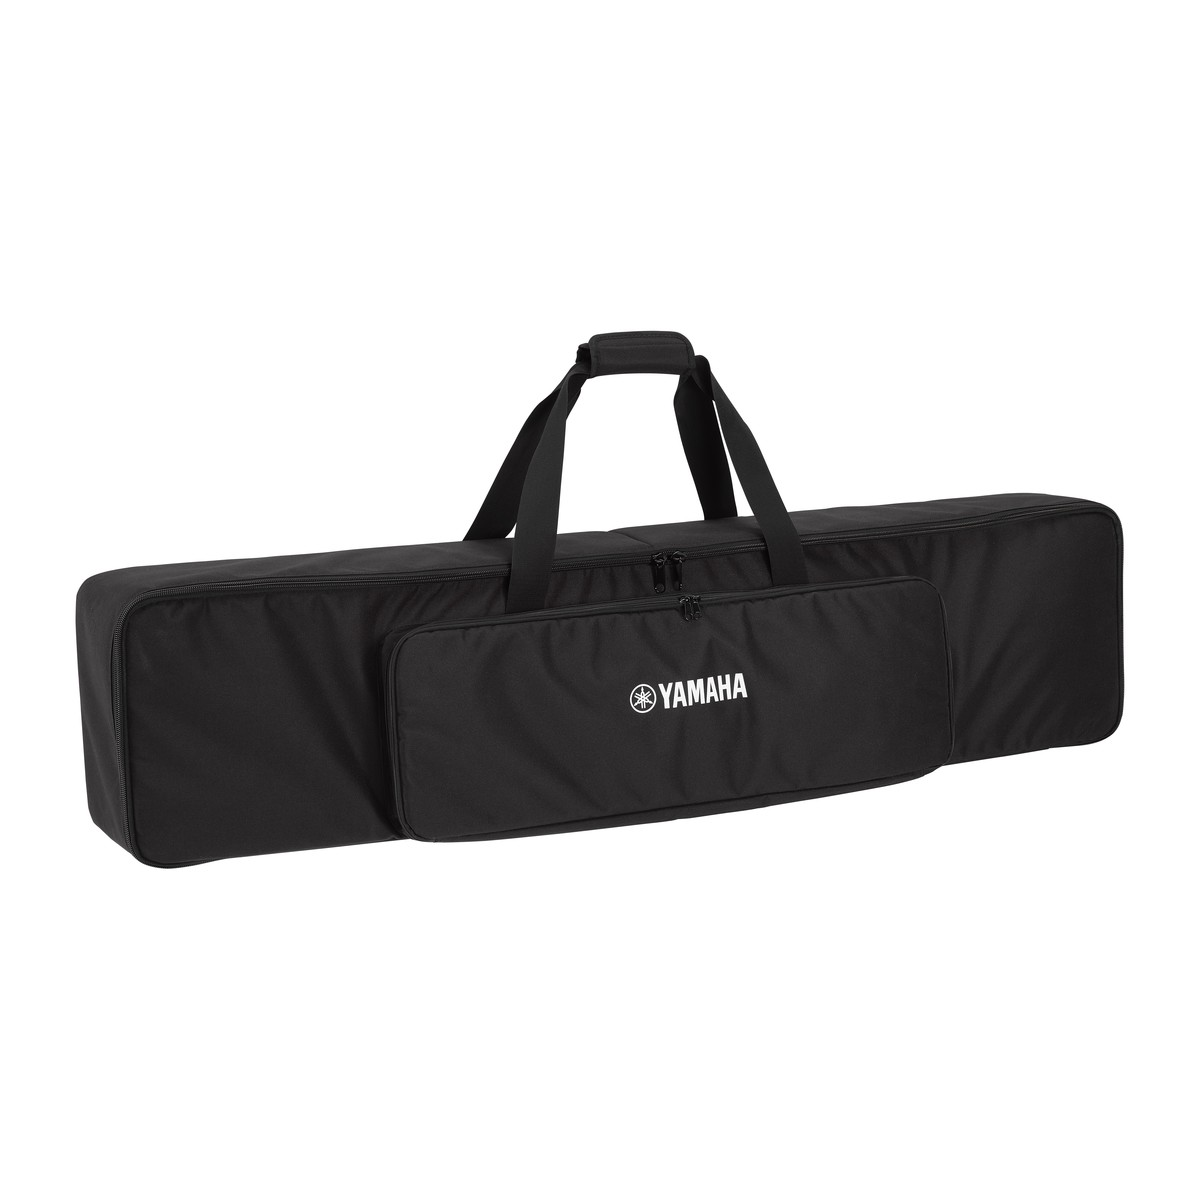 yamaha soft case for p125 digital piano at gear4music. Black Bedroom Furniture Sets. Home Design Ideas